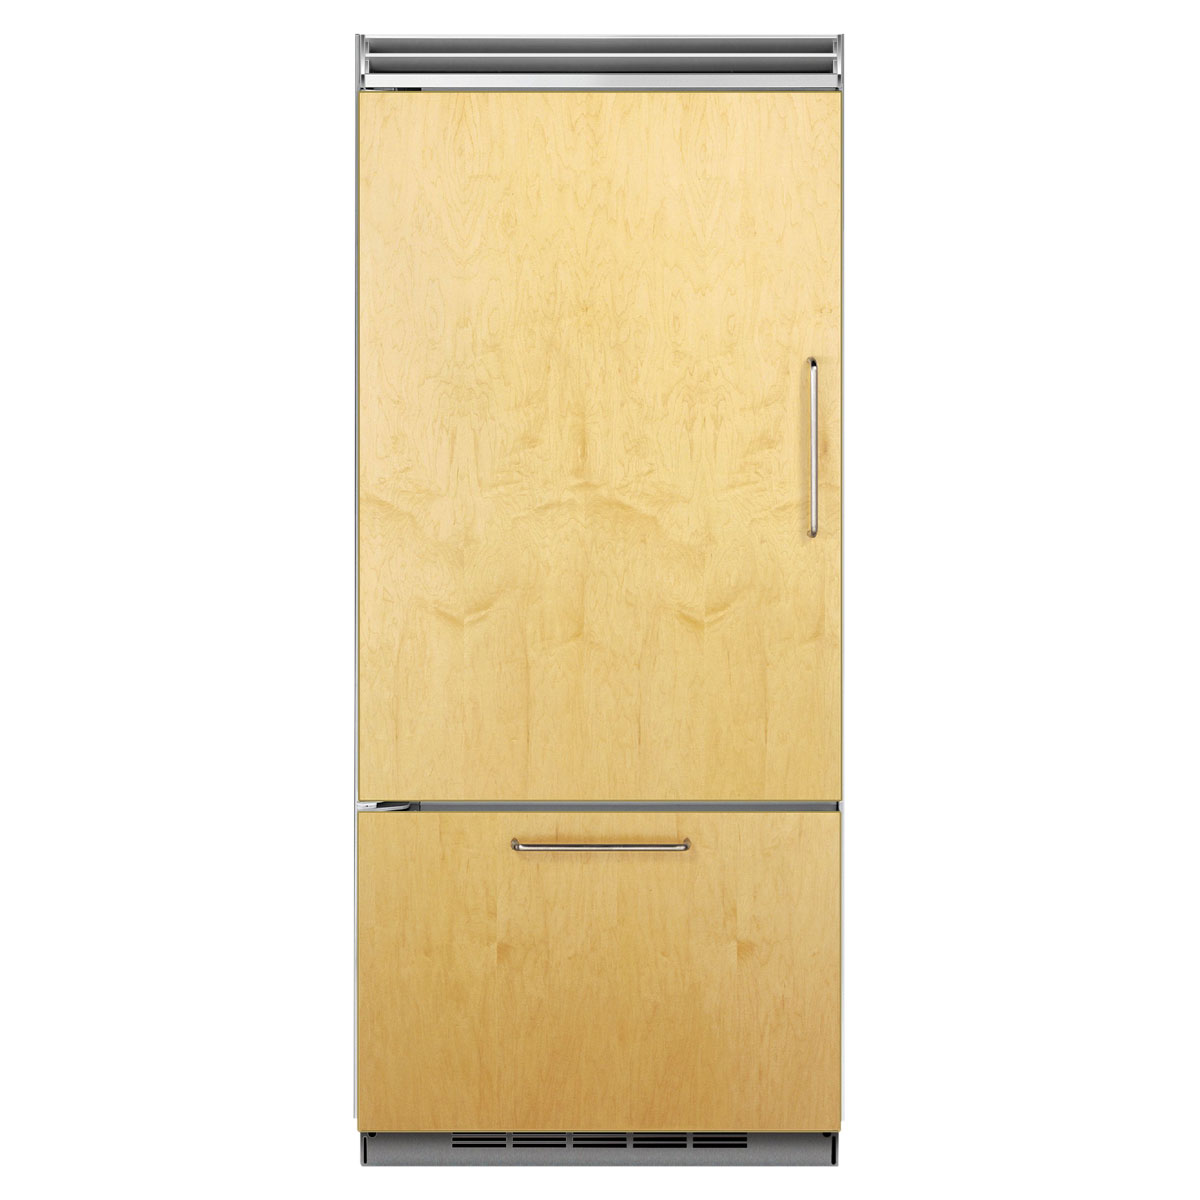 "Marvel  Marvel Professional Built-In 36"" Bottom Freezer Refrigerator- Panel-Ready Solid Overlay Door Right Hinge"